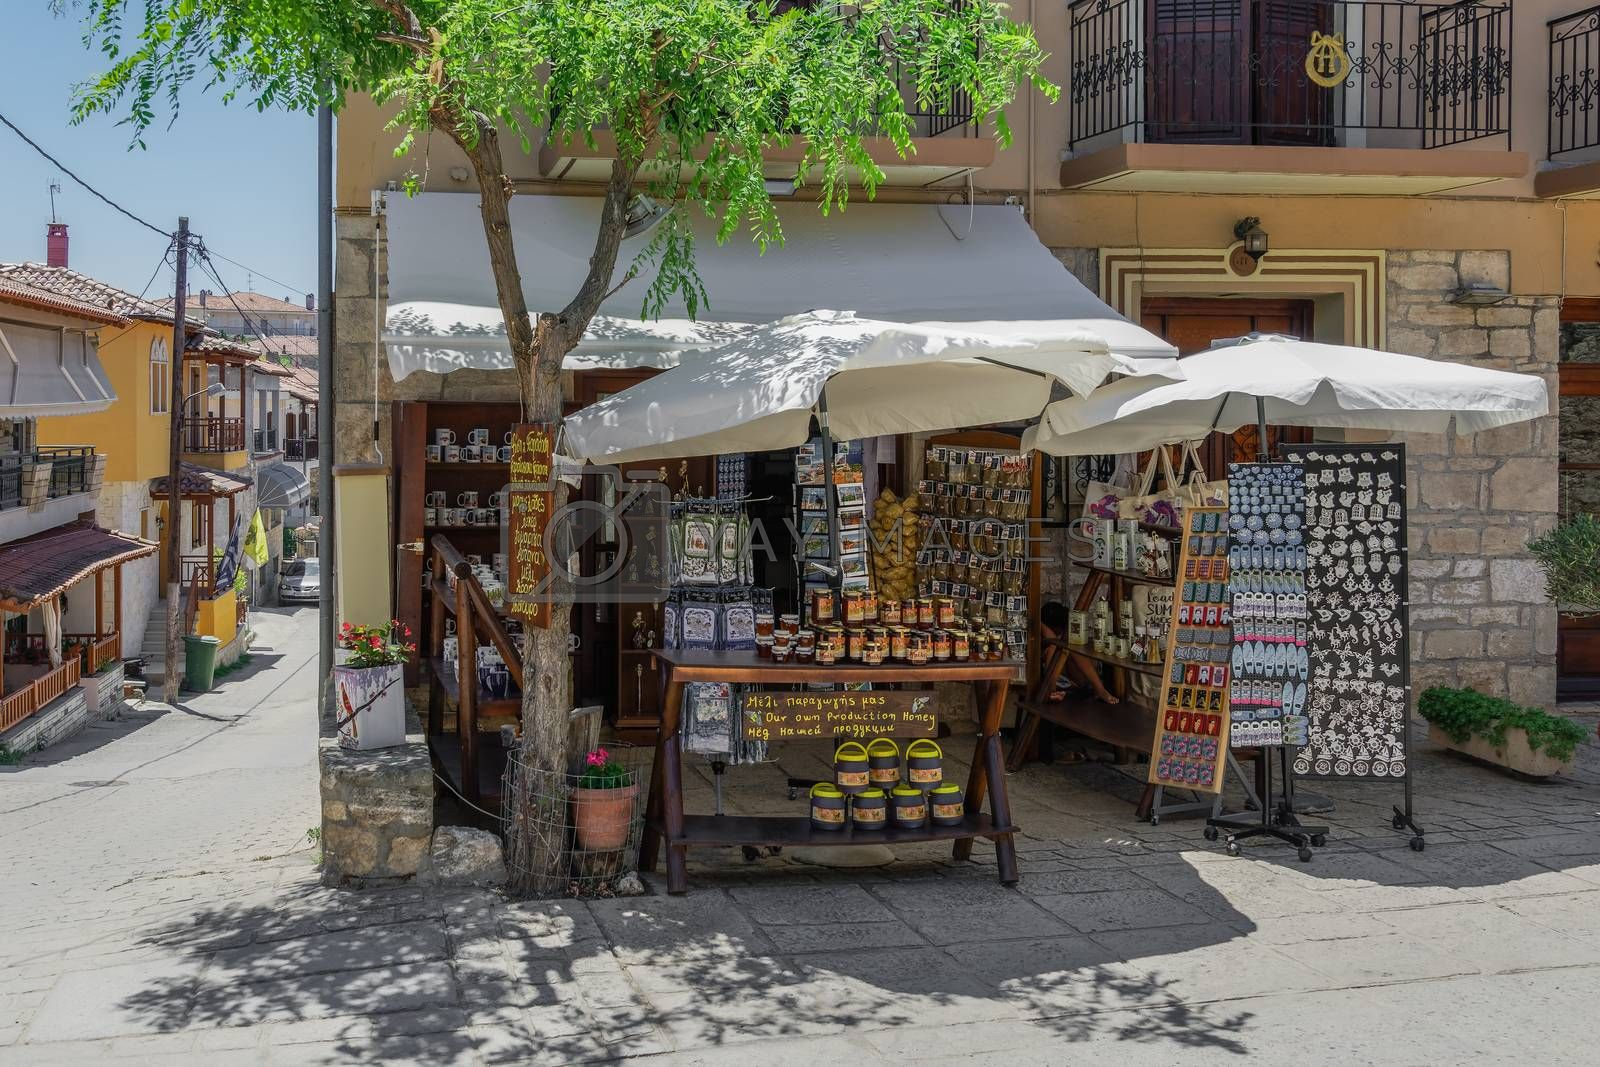 Day summer view of local gift shops without customers at Athytos village, Kassandra peninsula.